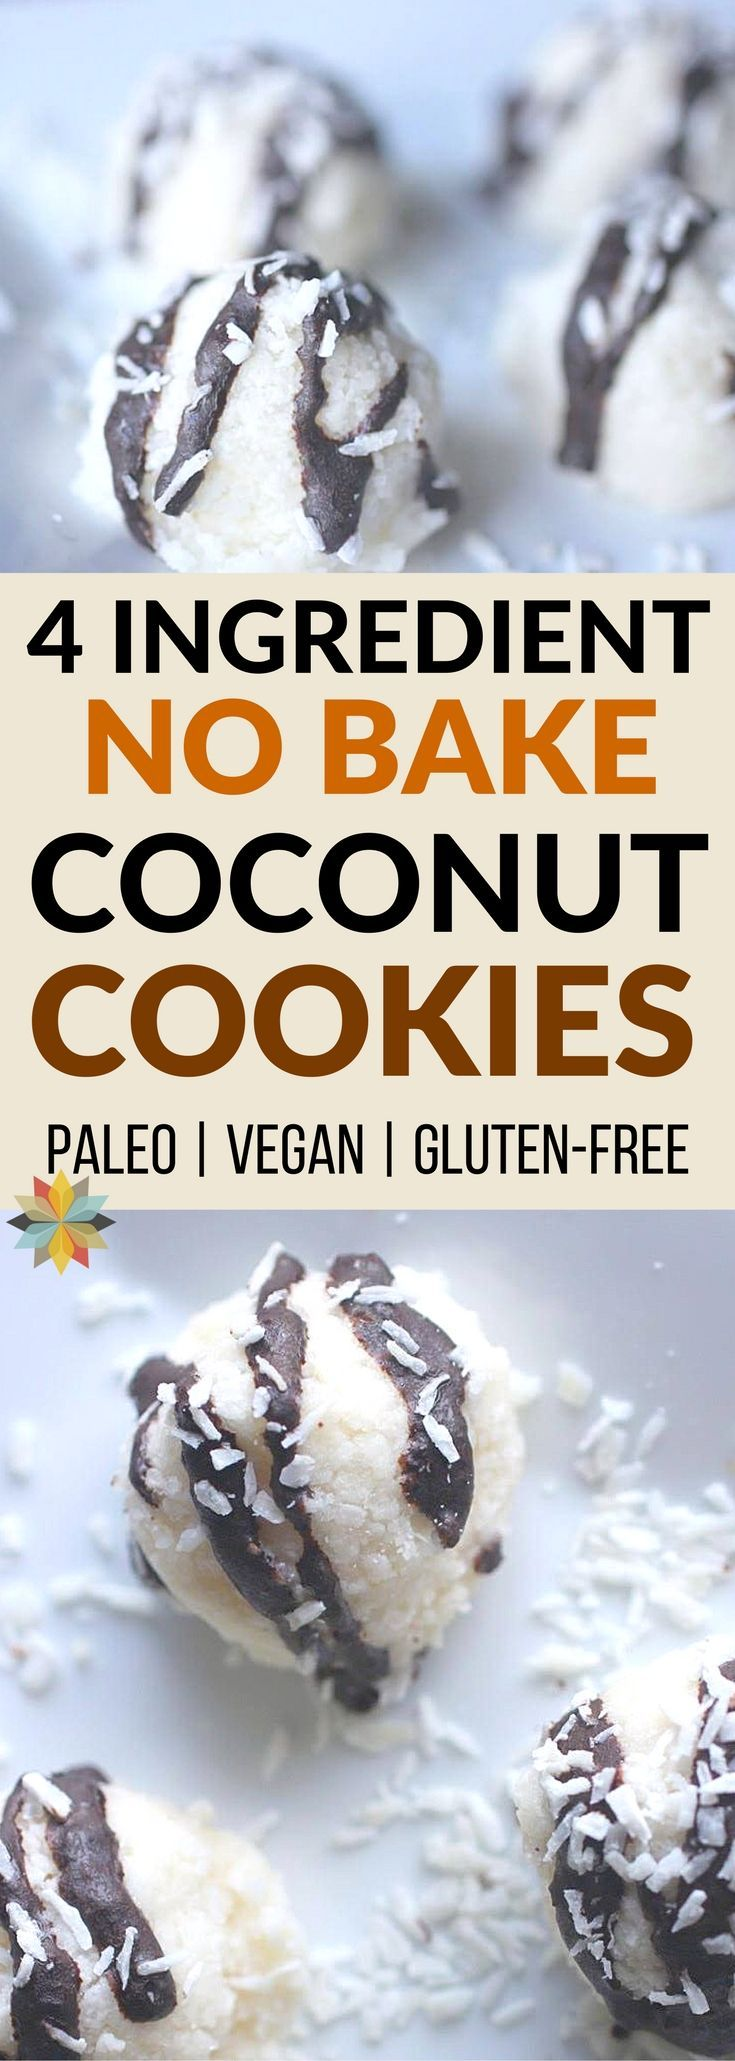 These No Bake Coconut Cookies are our go to when we need a treat on the fly!  They come together super quick and are loaded with healthy ingredients. Plus they're paleo, low carb, and sugar-free too!